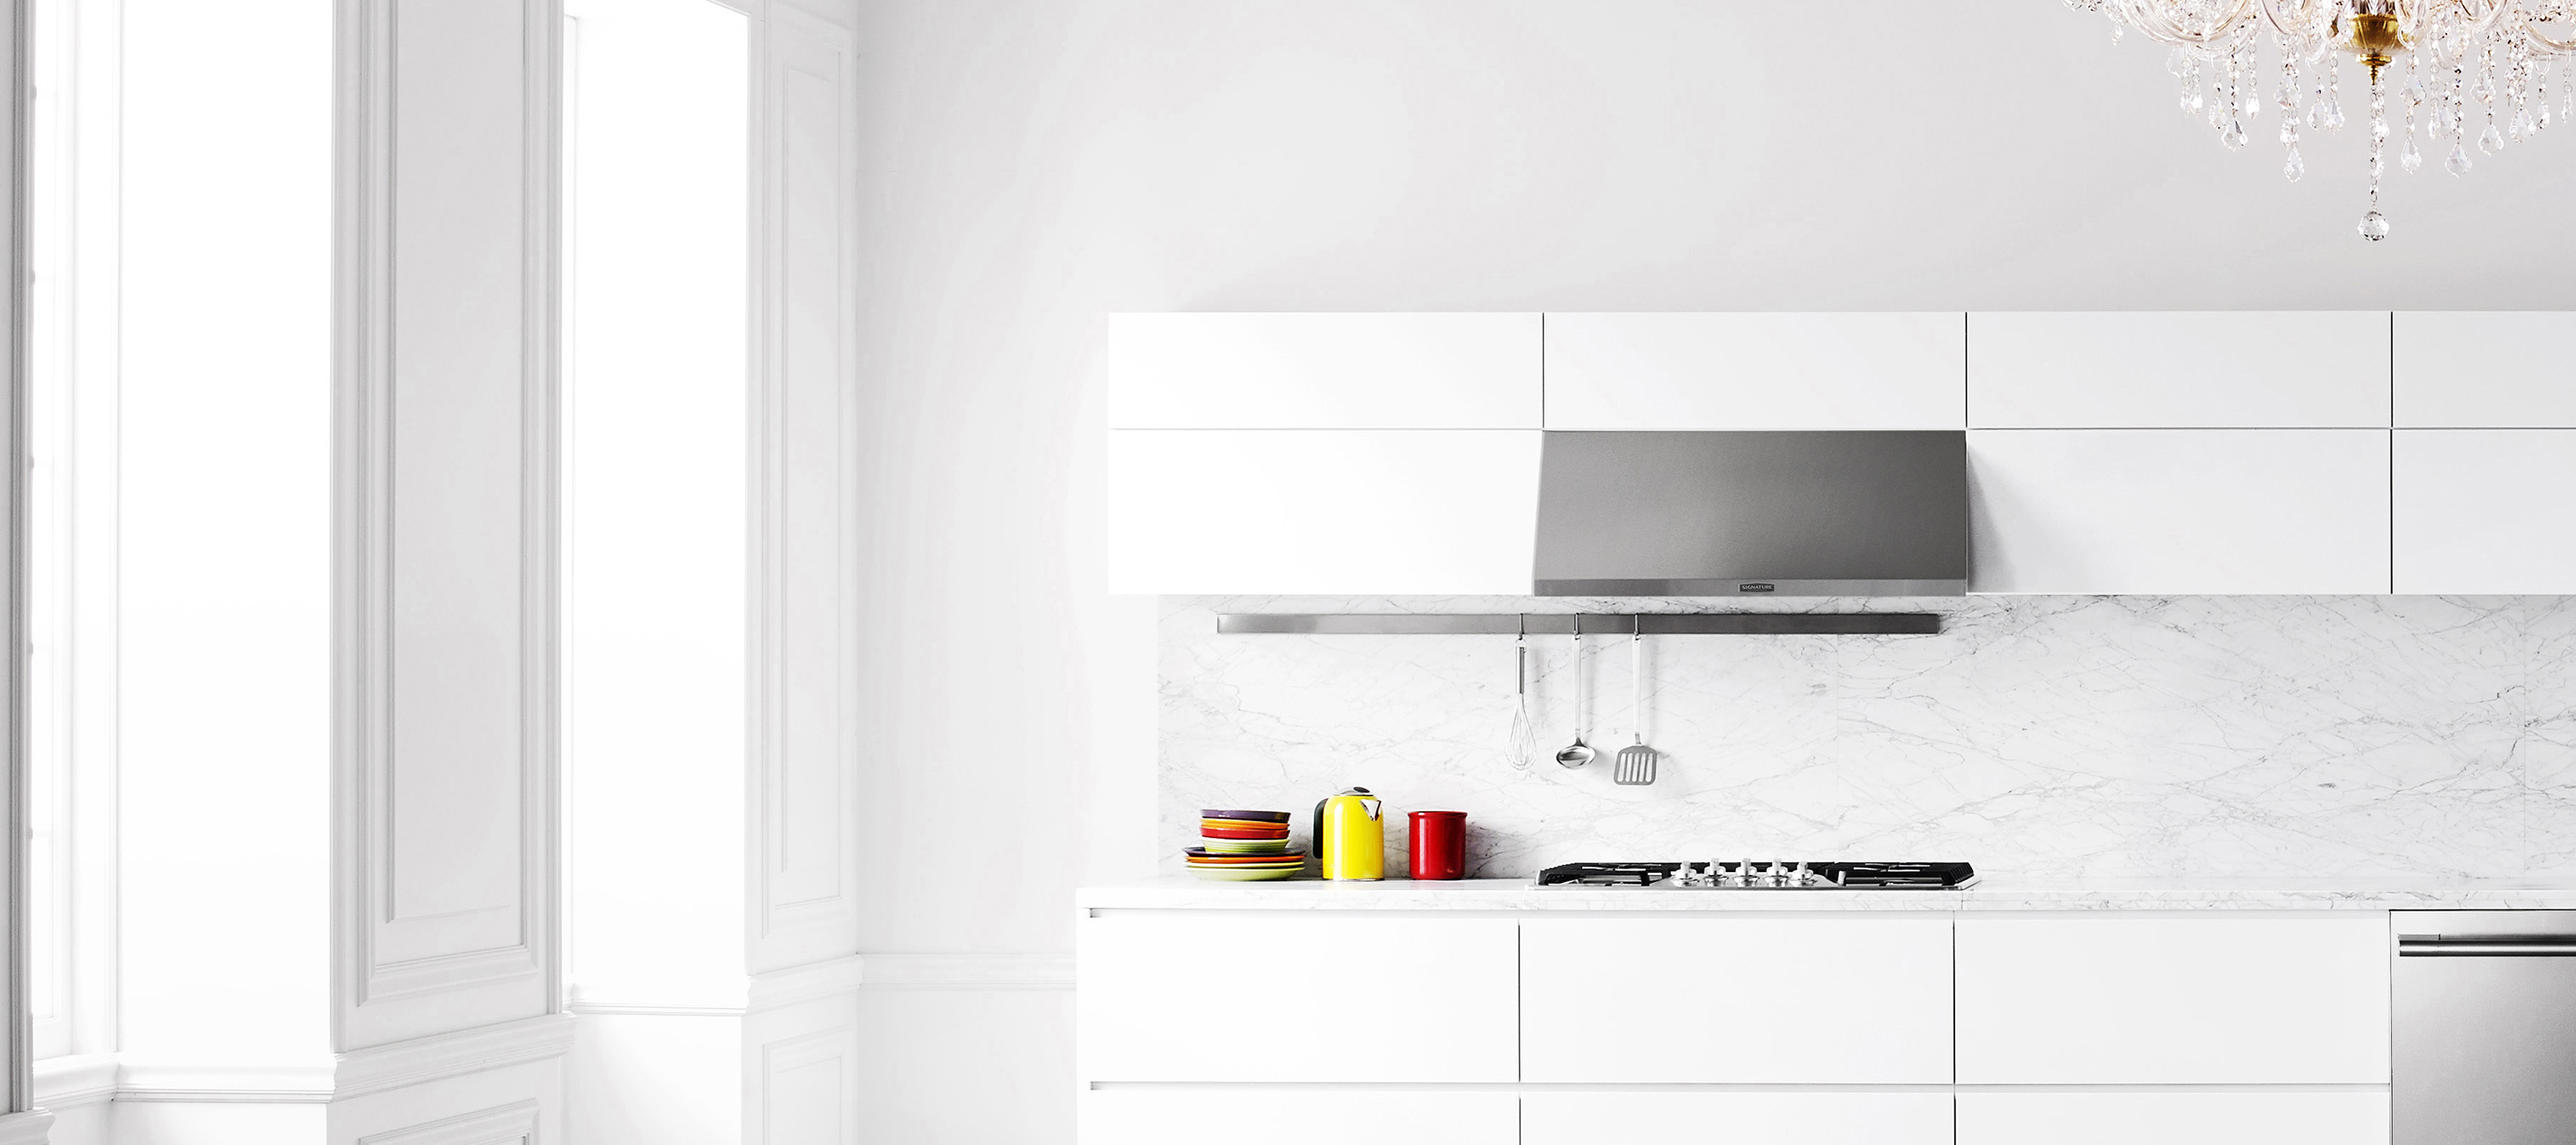 36-inch and 30-inch Ventilation Hoods from Signature Kitchen Suite